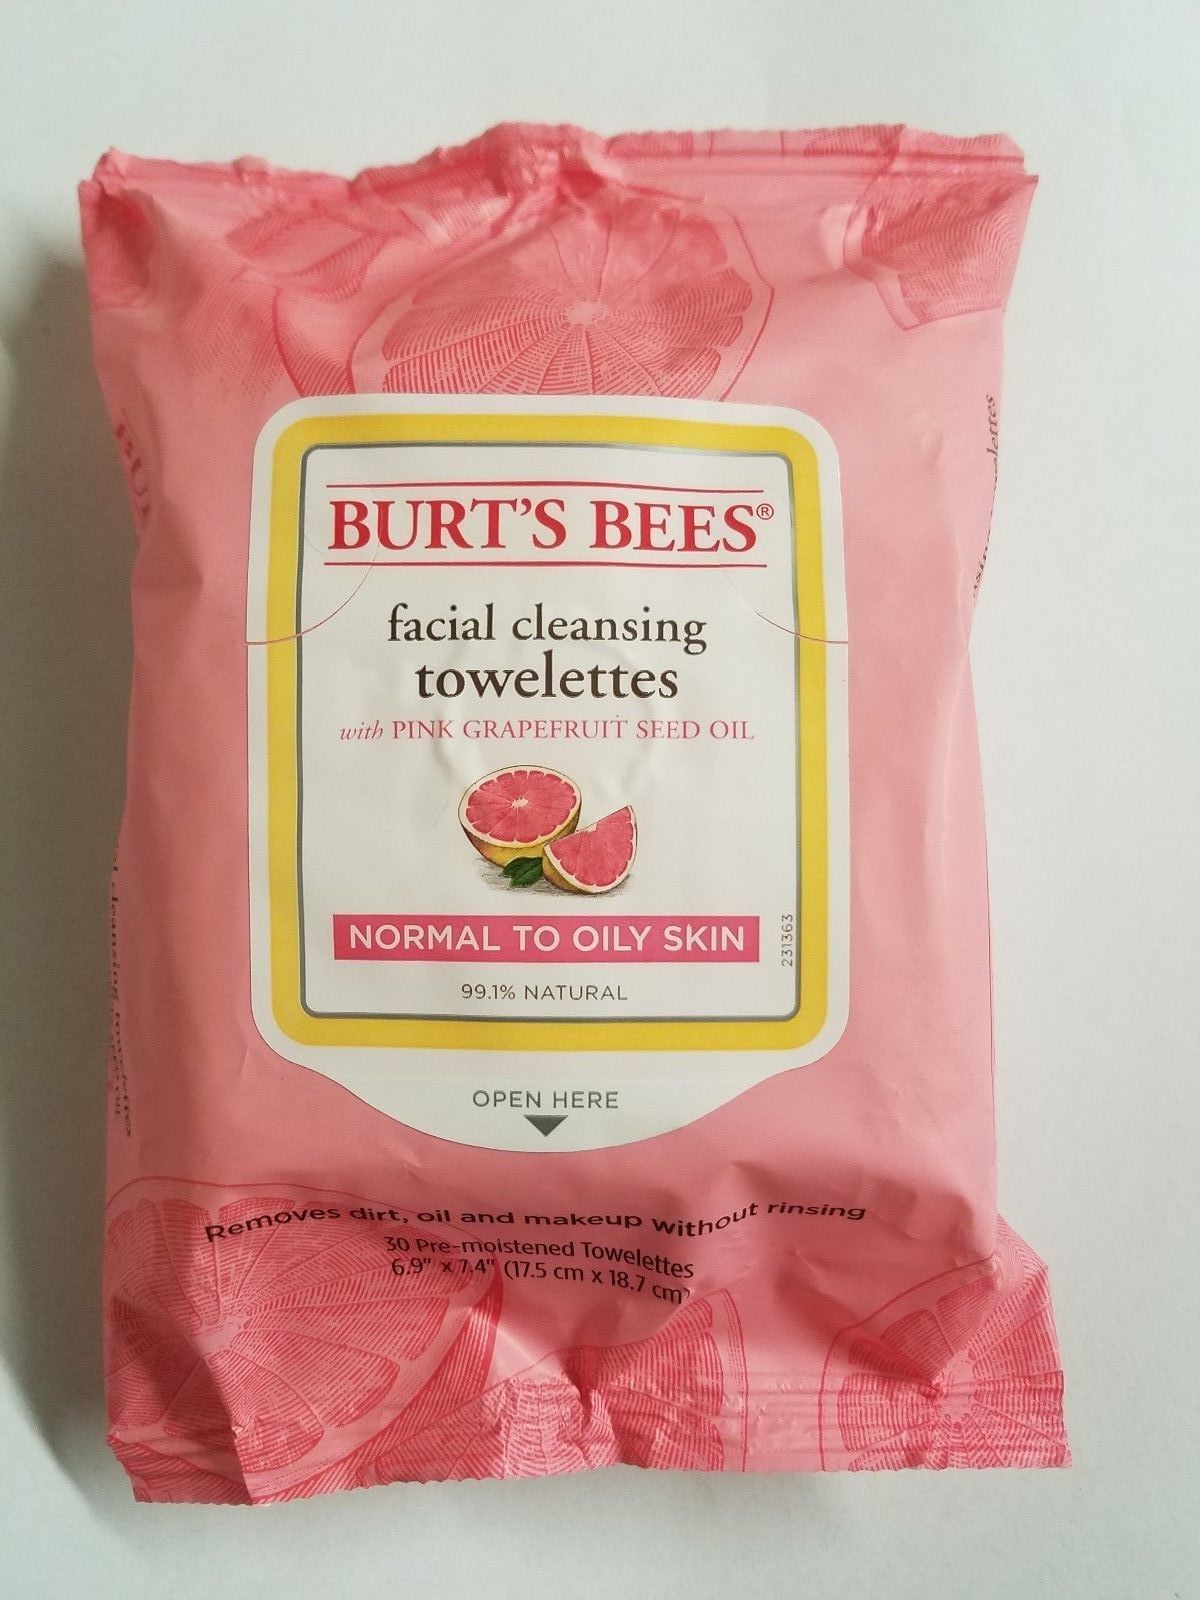 Burt's Bees Pink Grapefruit Facial Cleansing Normal-Oily Towelettes 30 Count x5